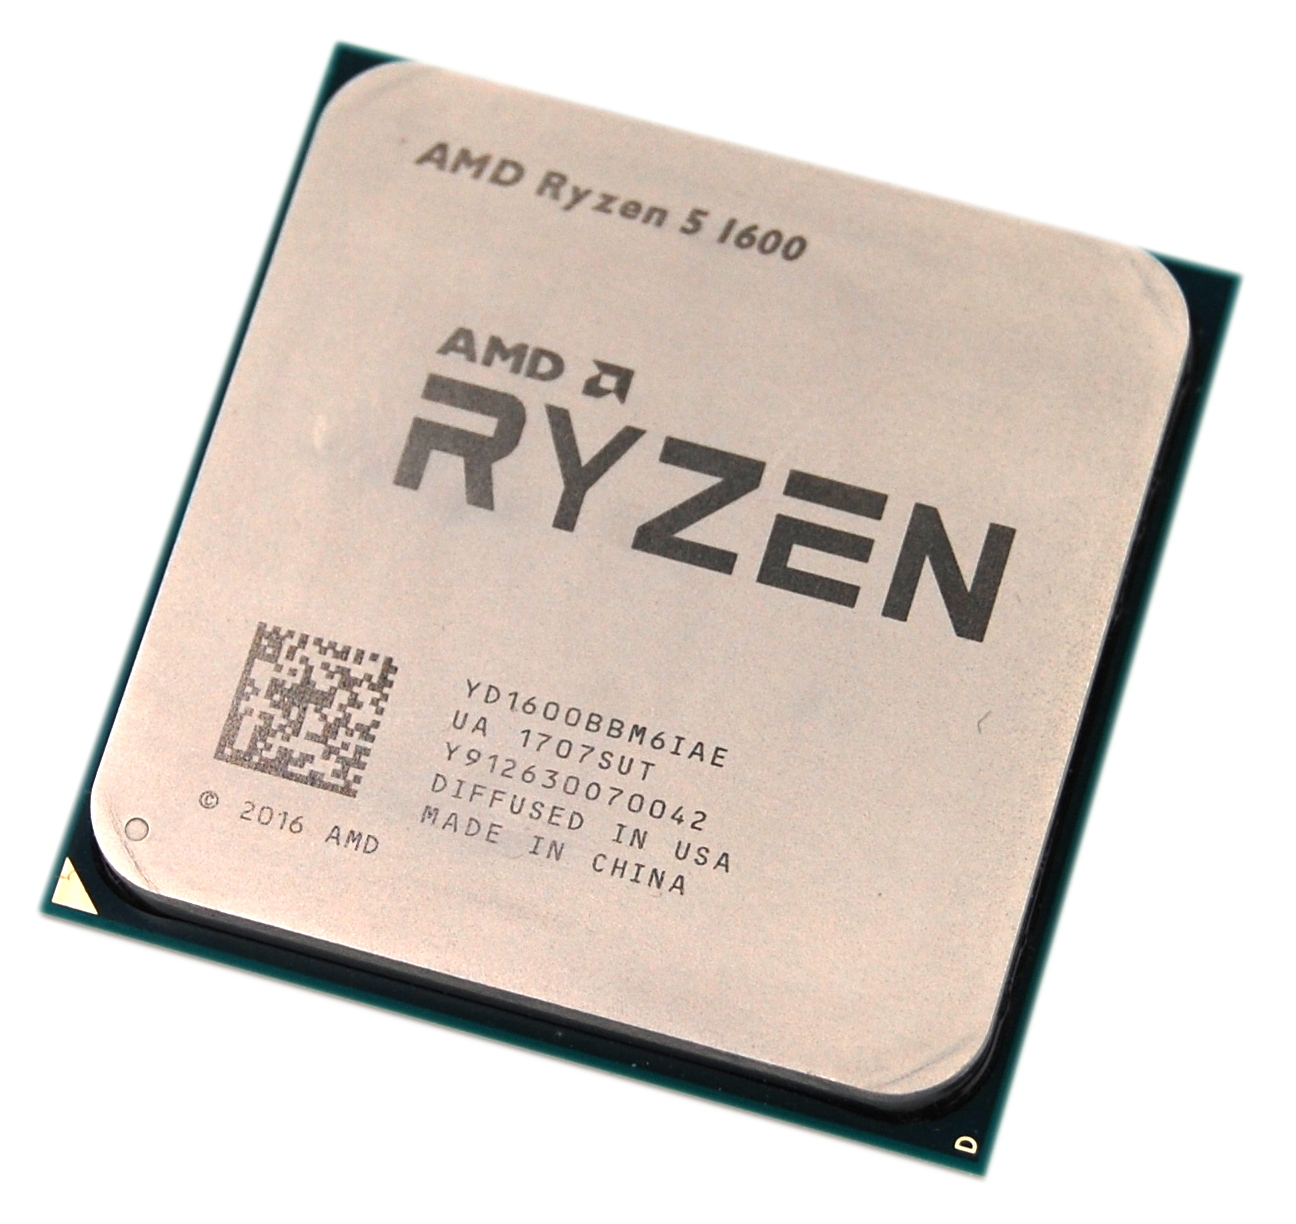 AMD YD1600BBM6IAE Ryzen 5 1600 3.2GHz Hexa-Core Socket AM4 Processor